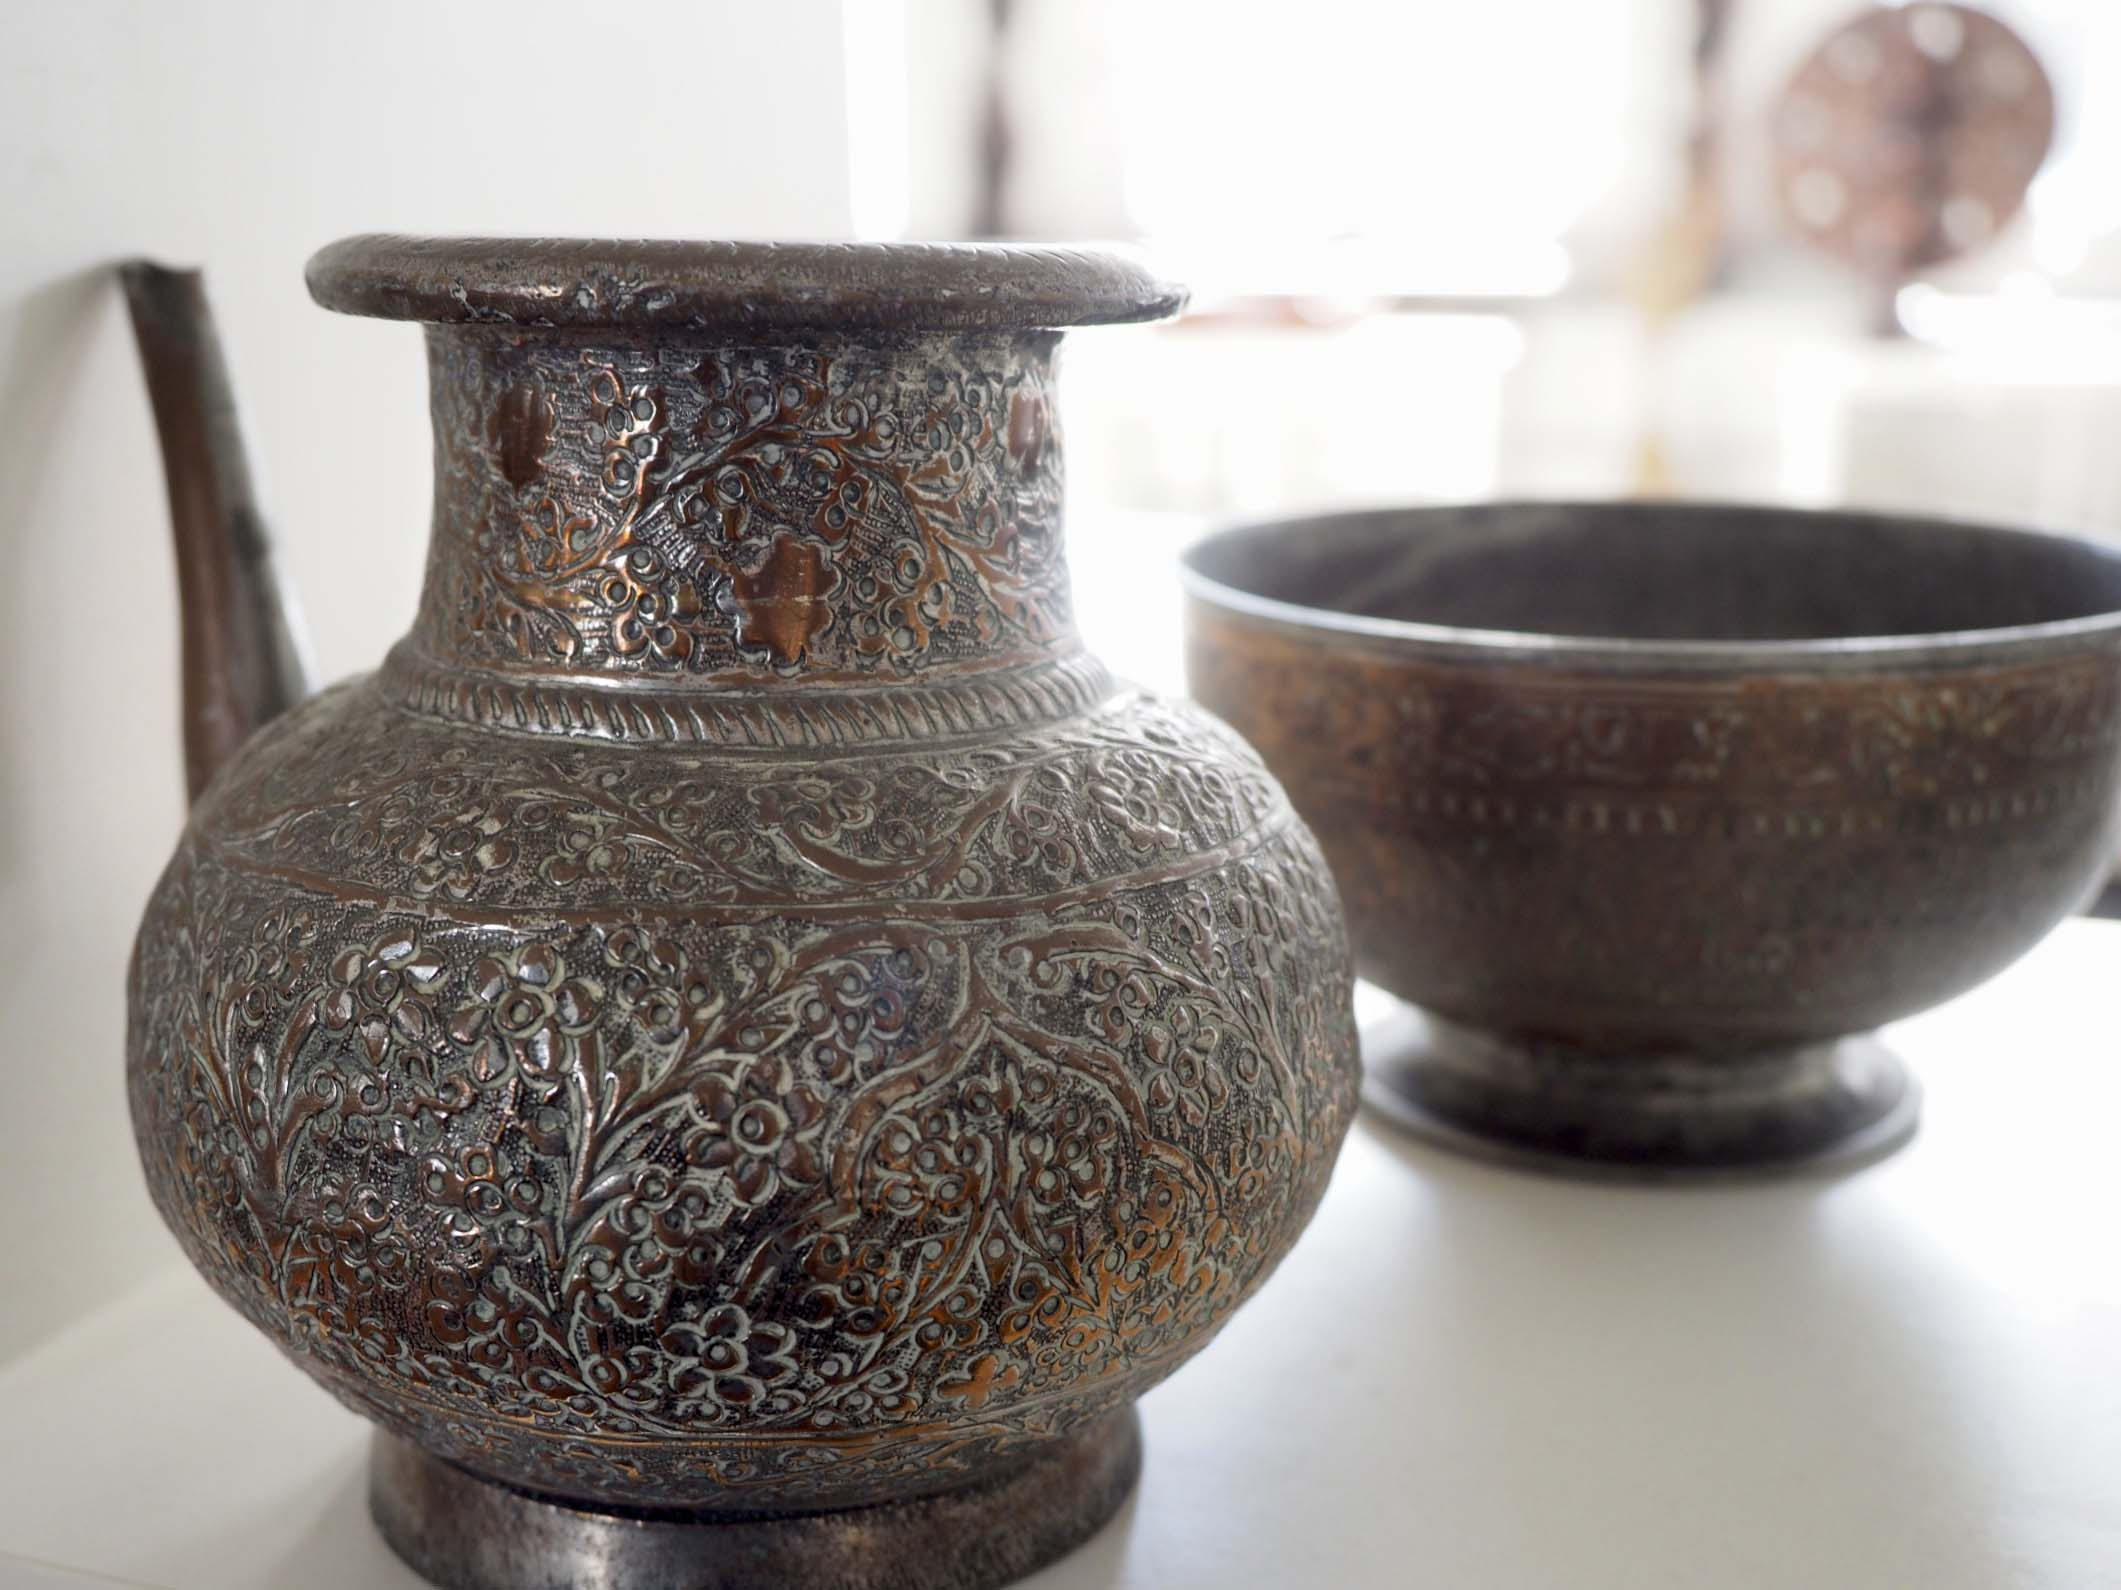 copper kettle from Afghanistan